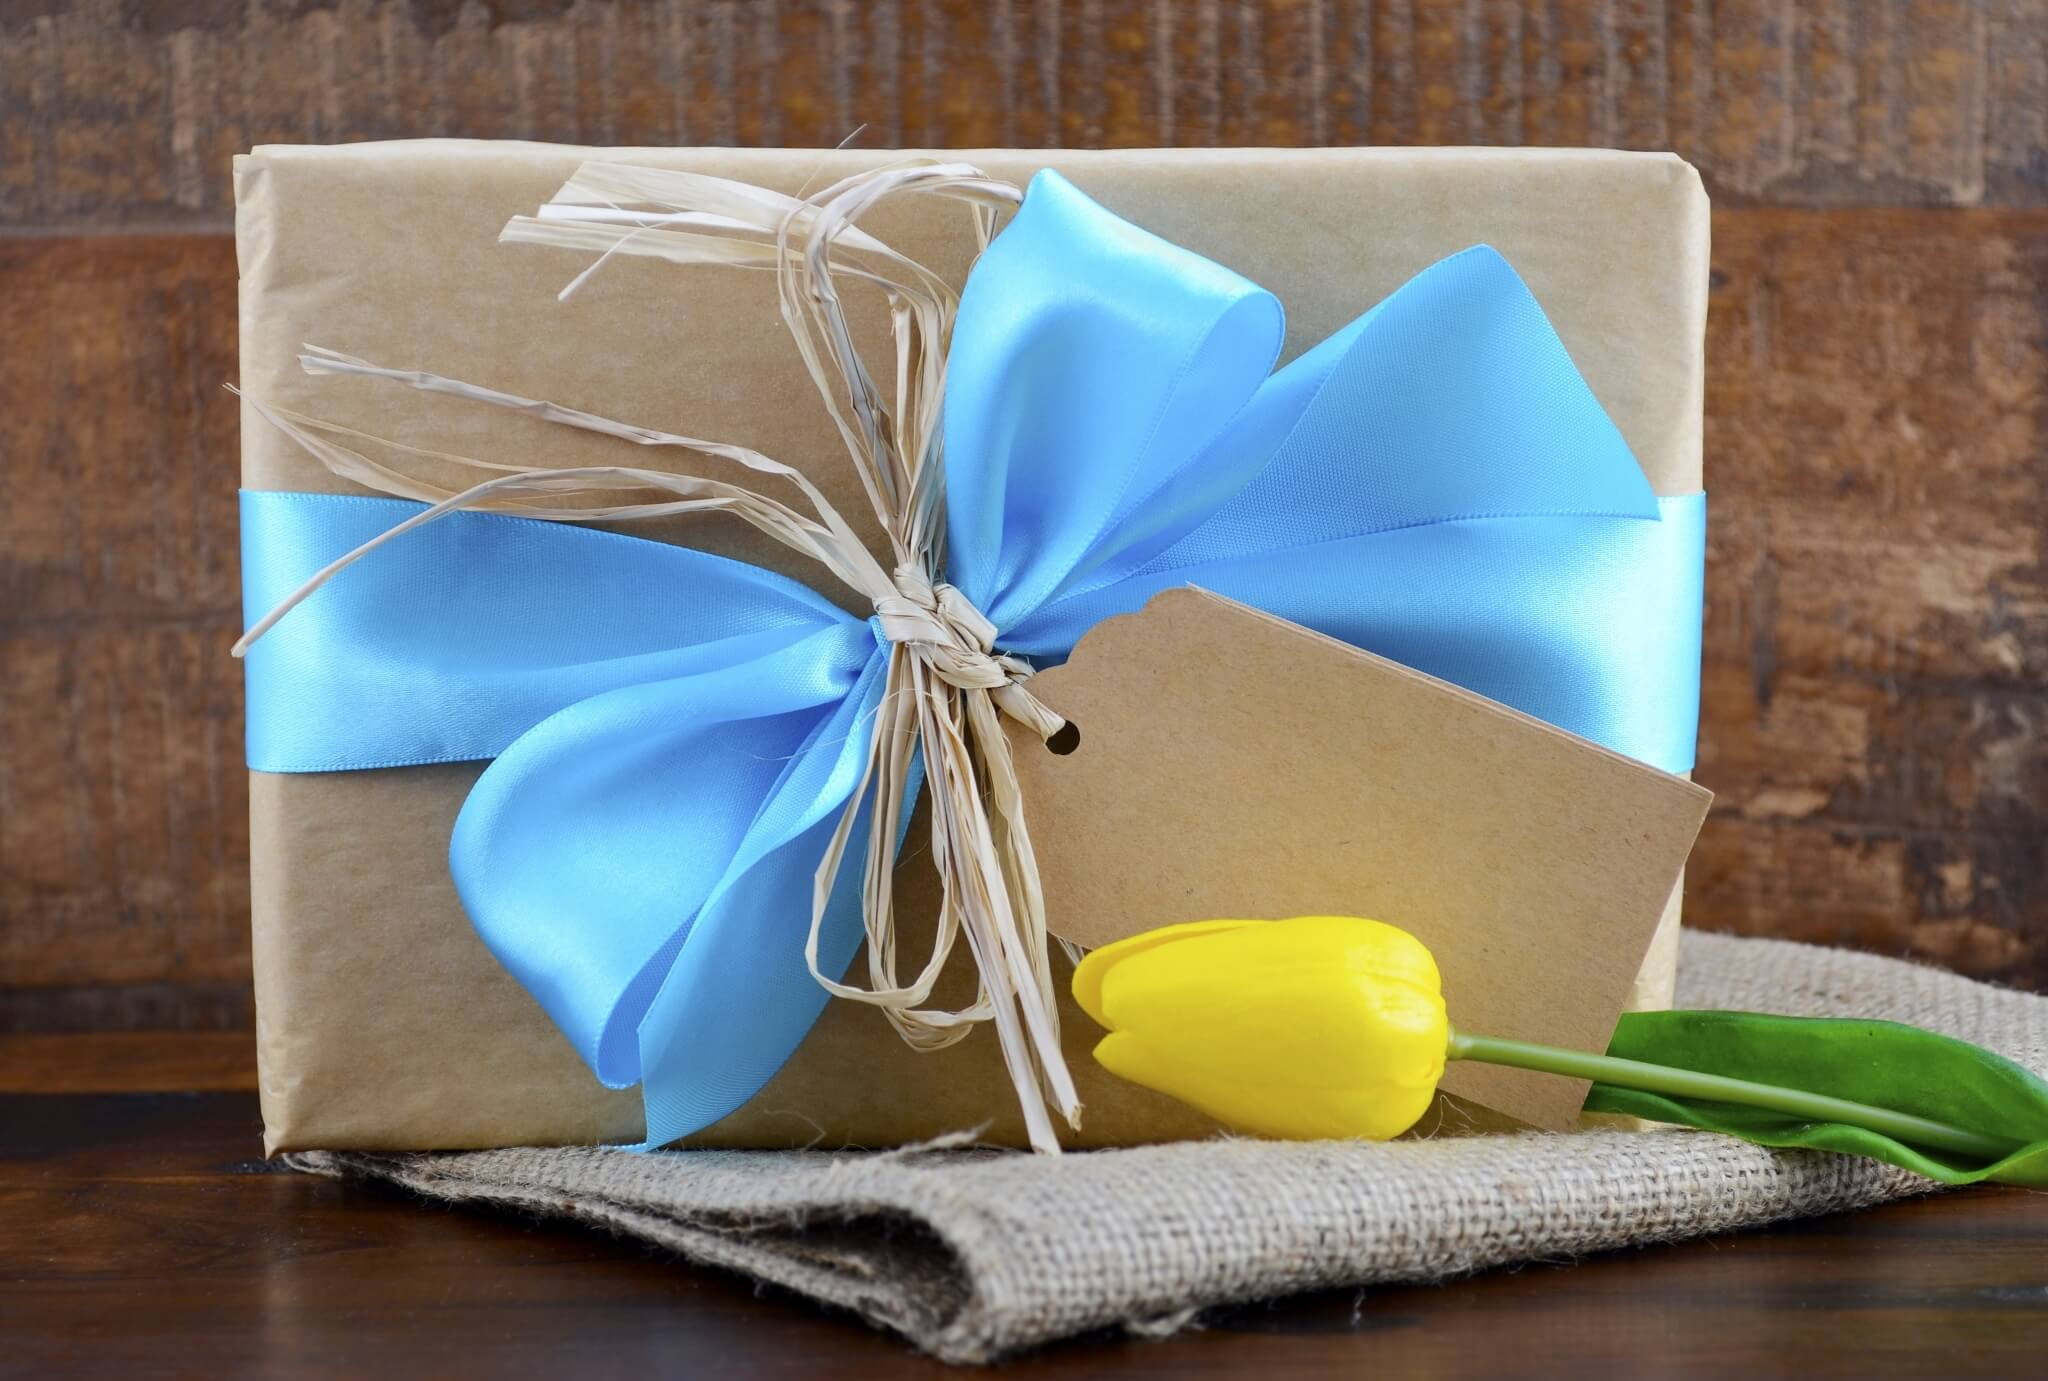 Happy-Fathers-Day-Natural-Kraft-Paper-Gift-000066087447_Large.jpg.jpeg